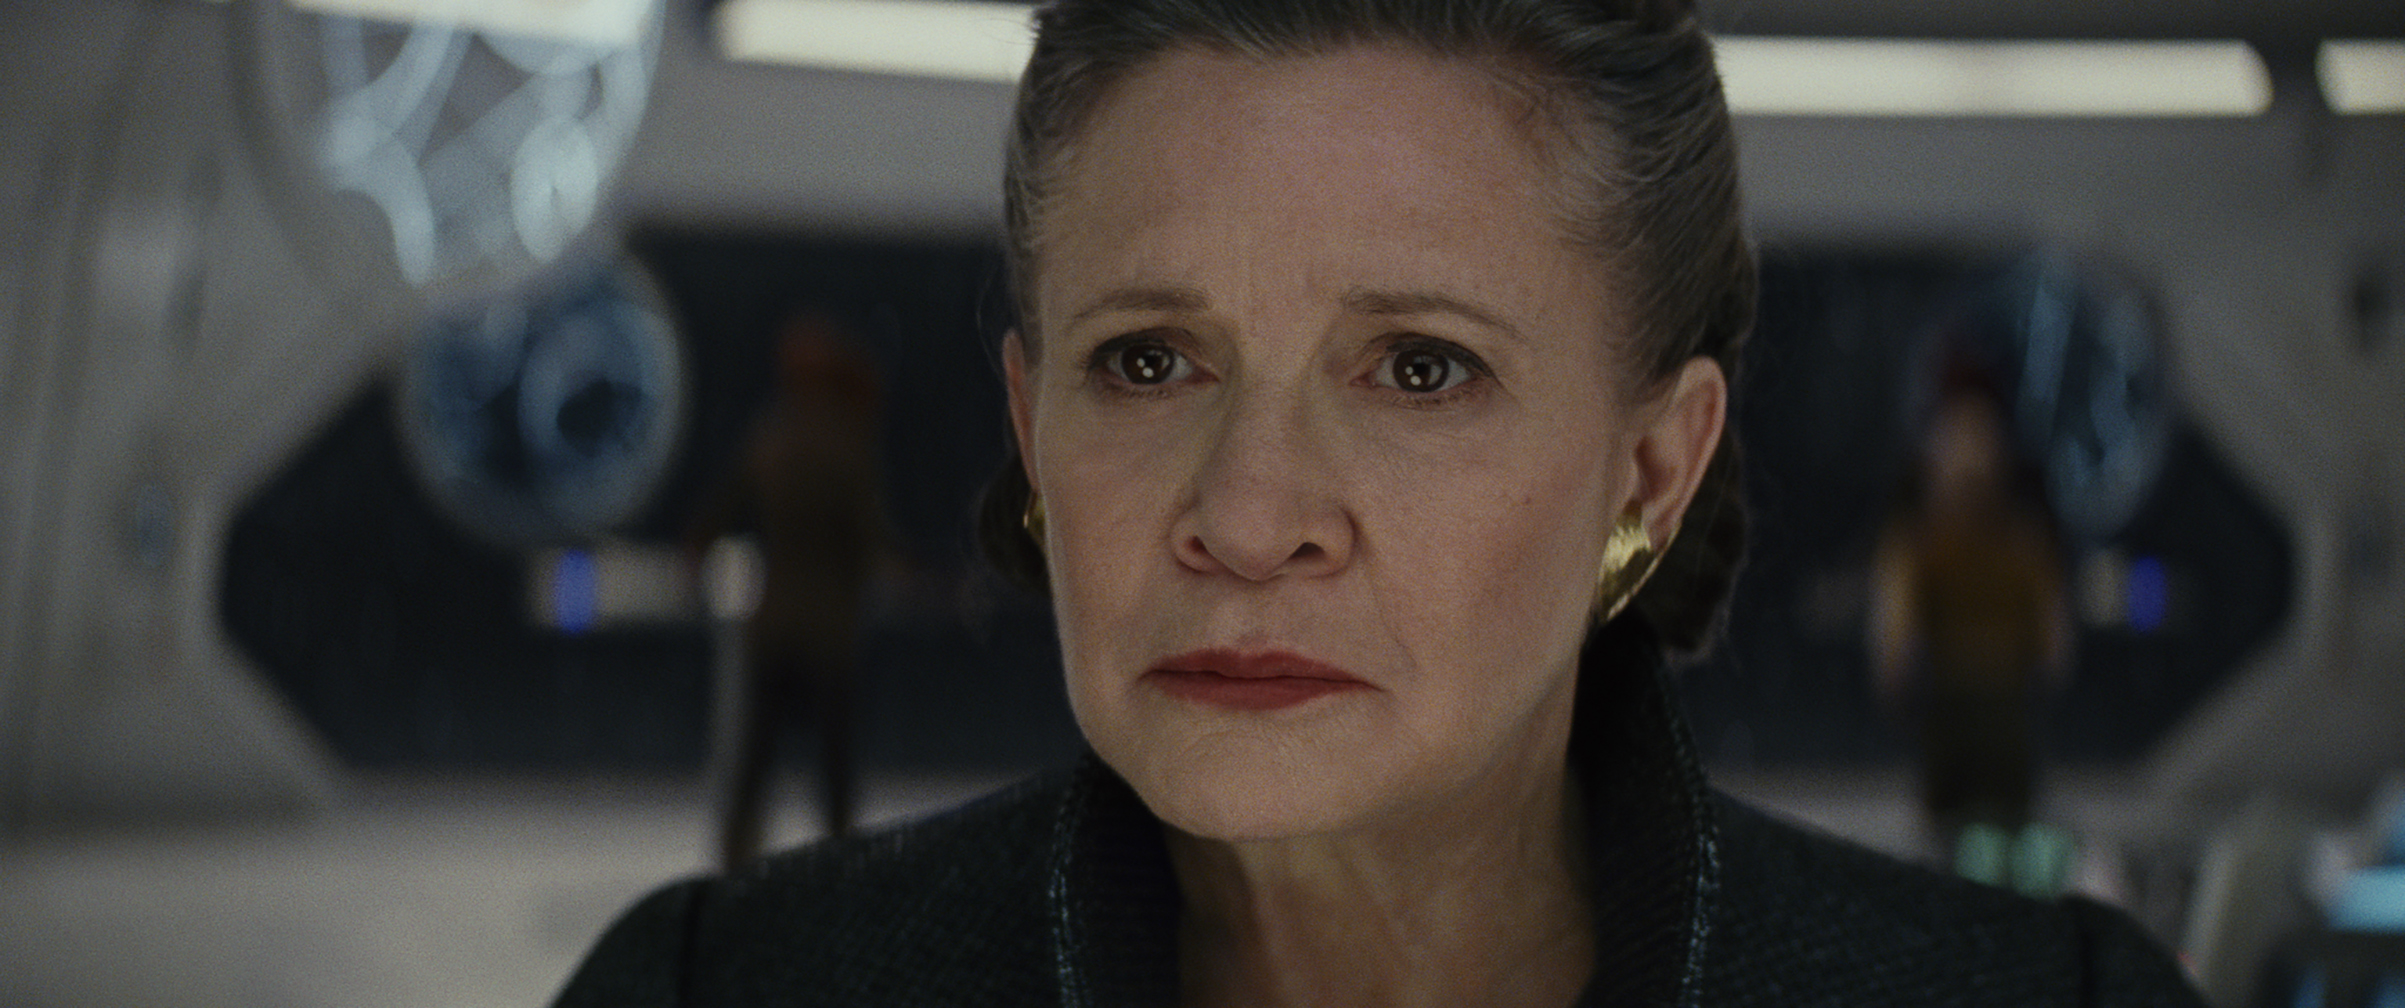 'Star Wars: The Last Jedi' marks the end of an era for fans of the beloved Princess-turned-General Leia, played by the late Carrie Fisher.